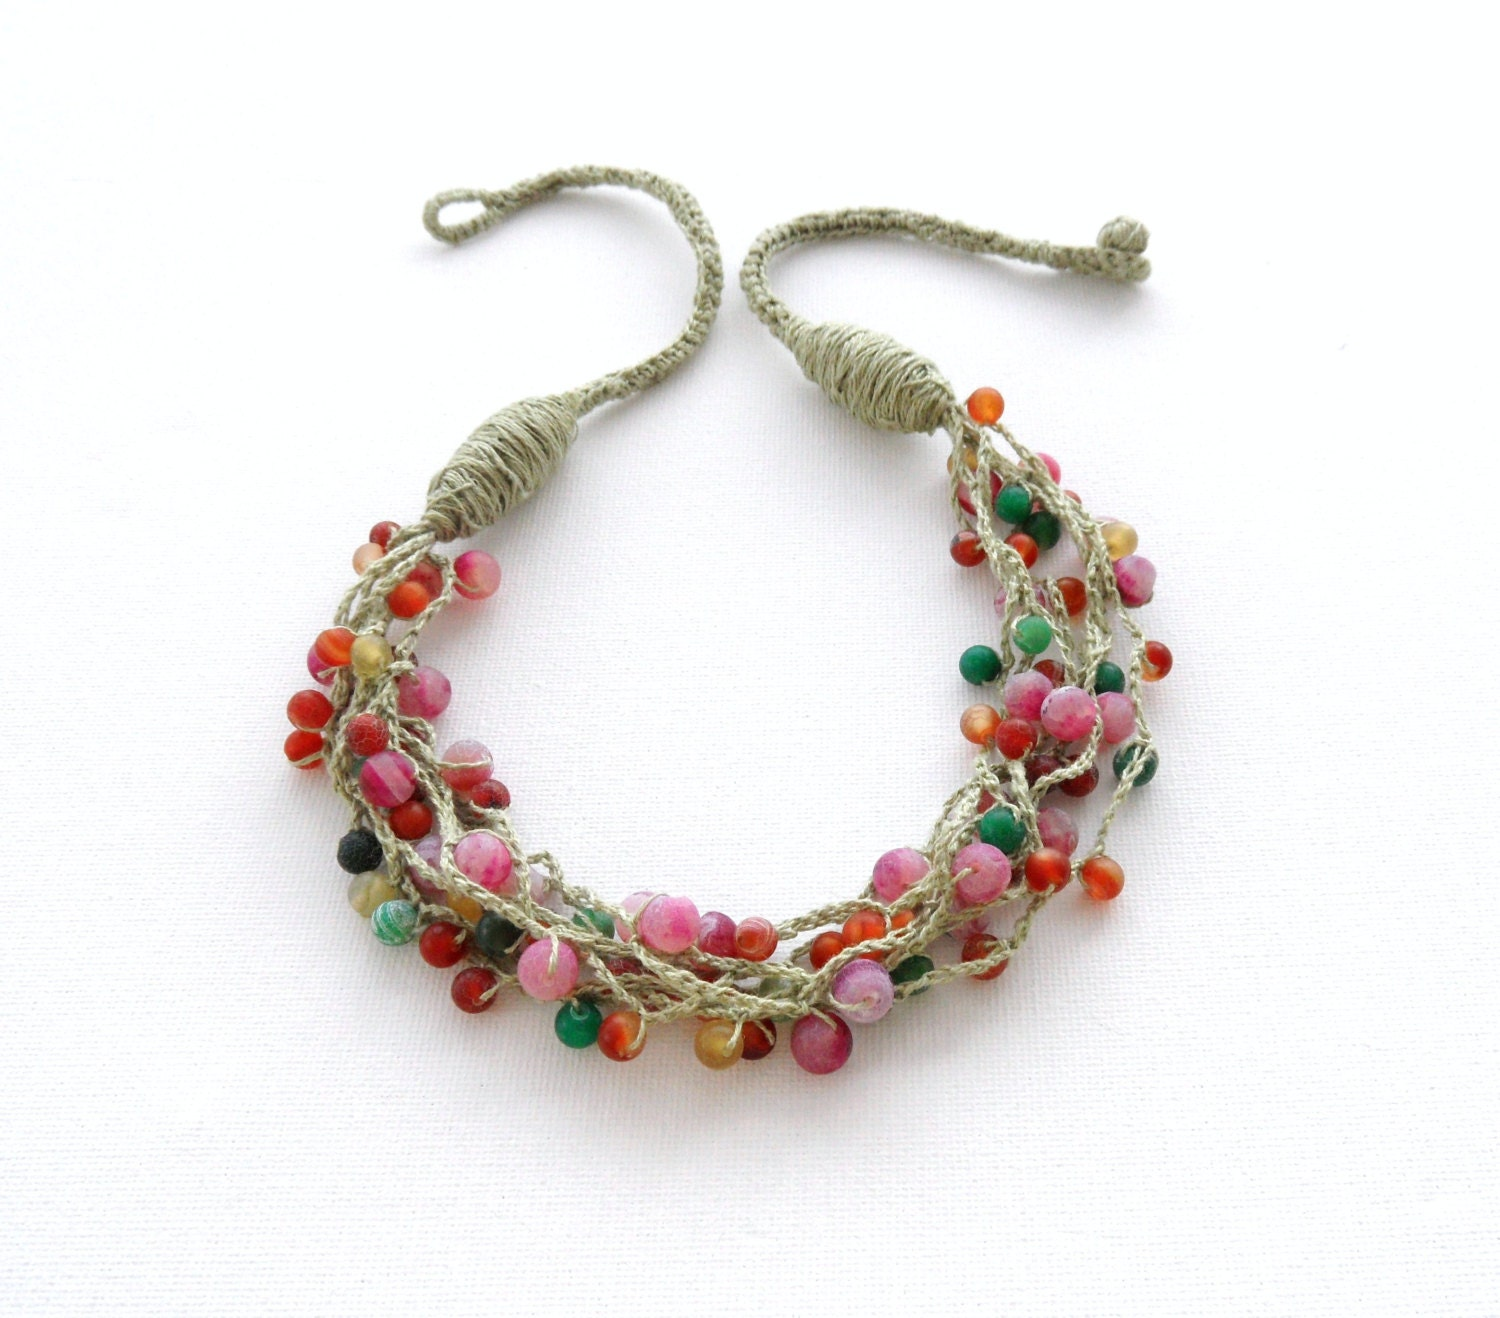 Linen Jewellery: Crochet Necklace Beaded Necklace Natural Linen Necklace